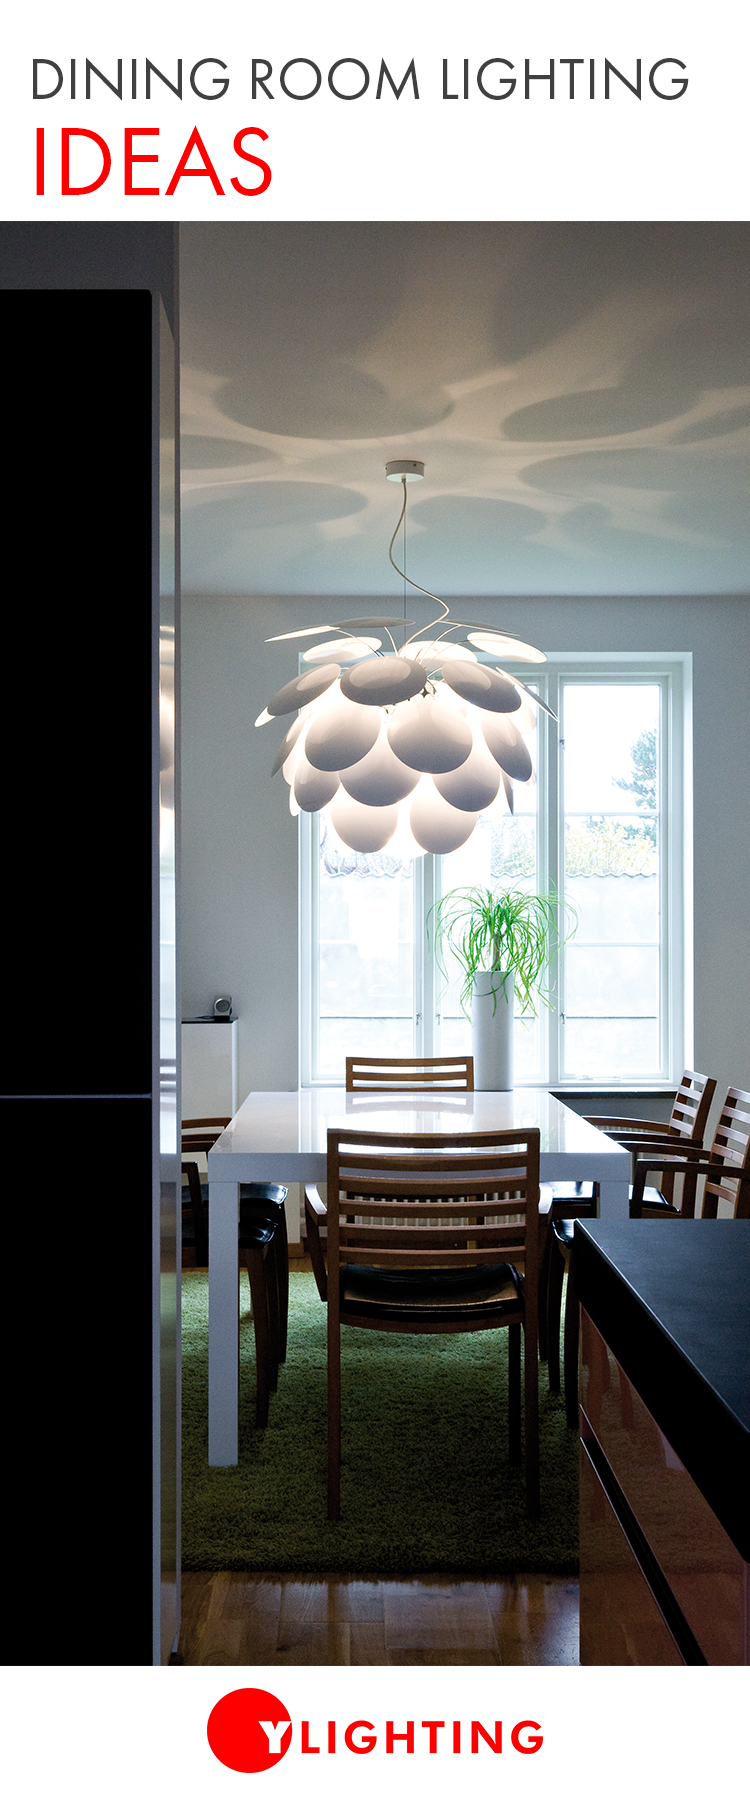 Dining room ceiling lighting ideas modern dining lighting ideas